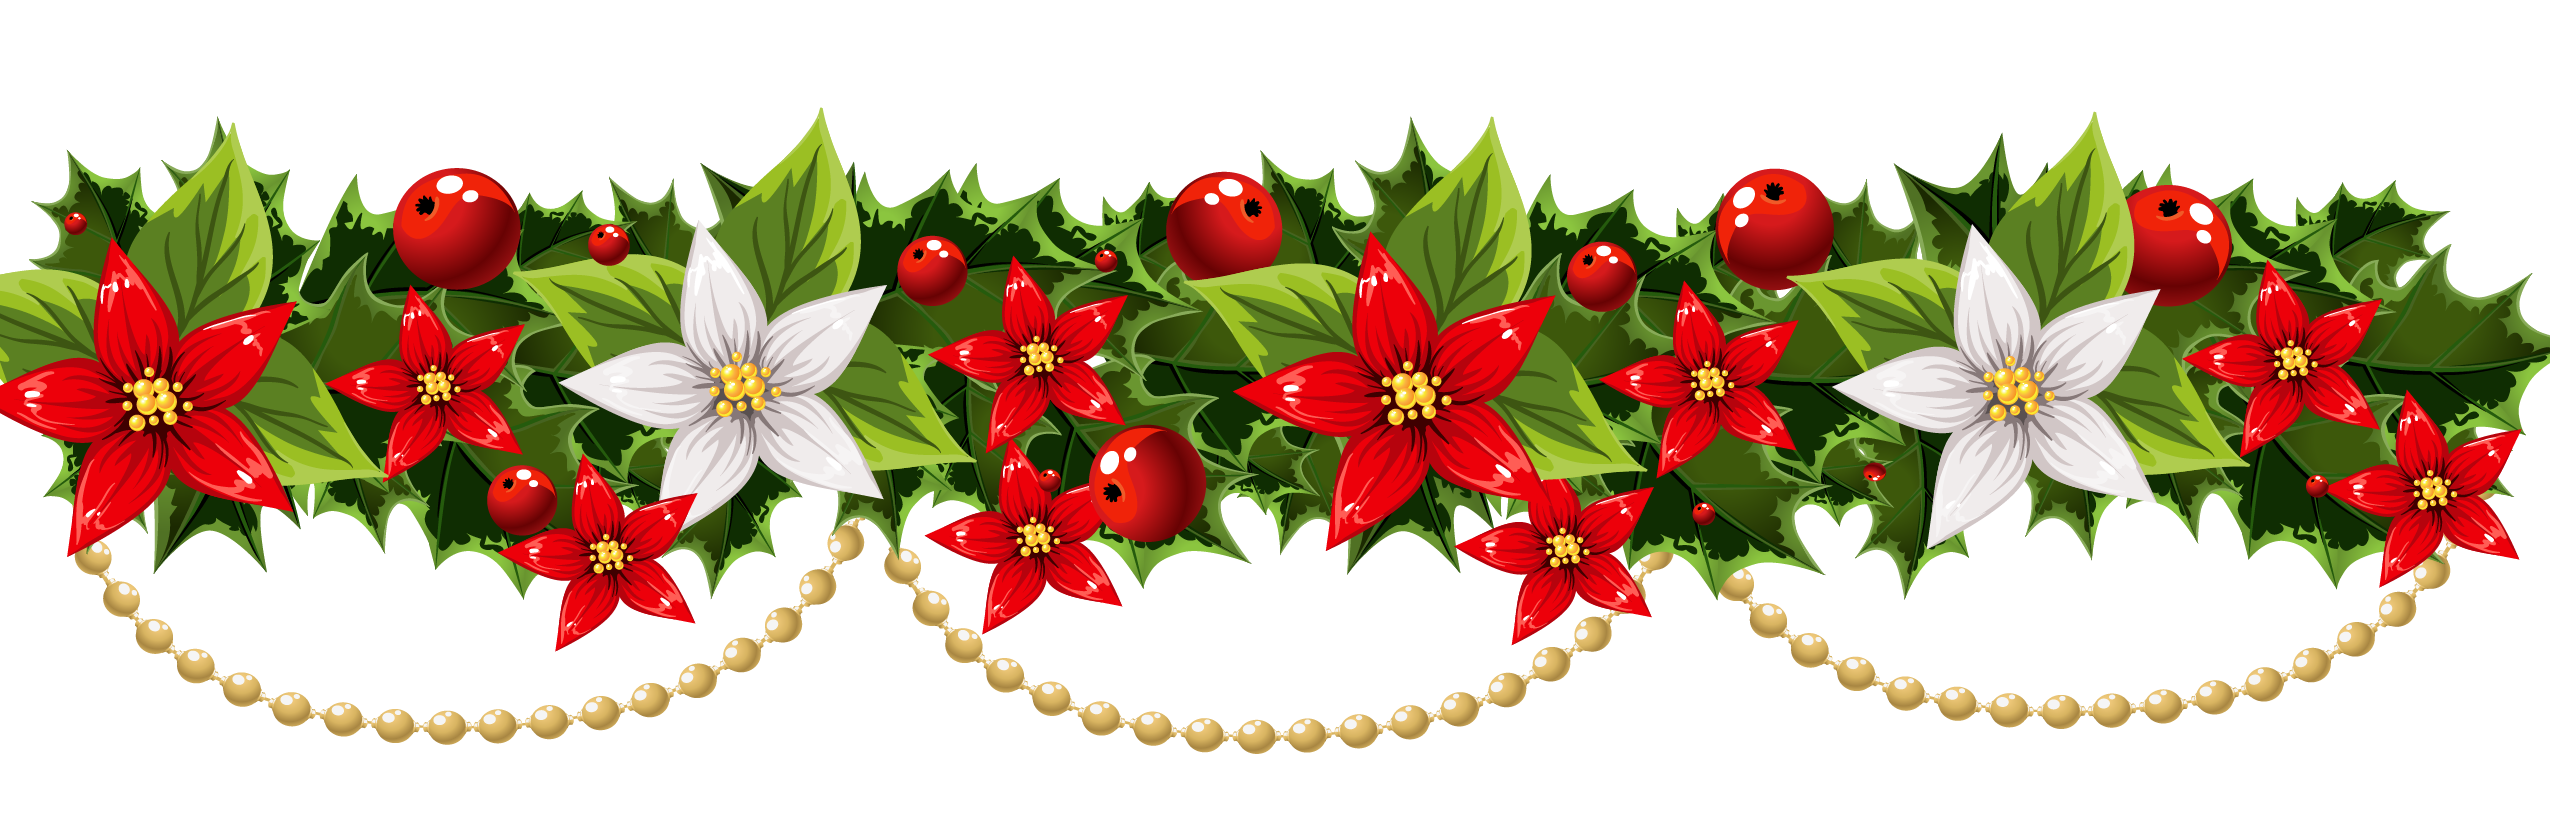 poinsettias clipart ornament